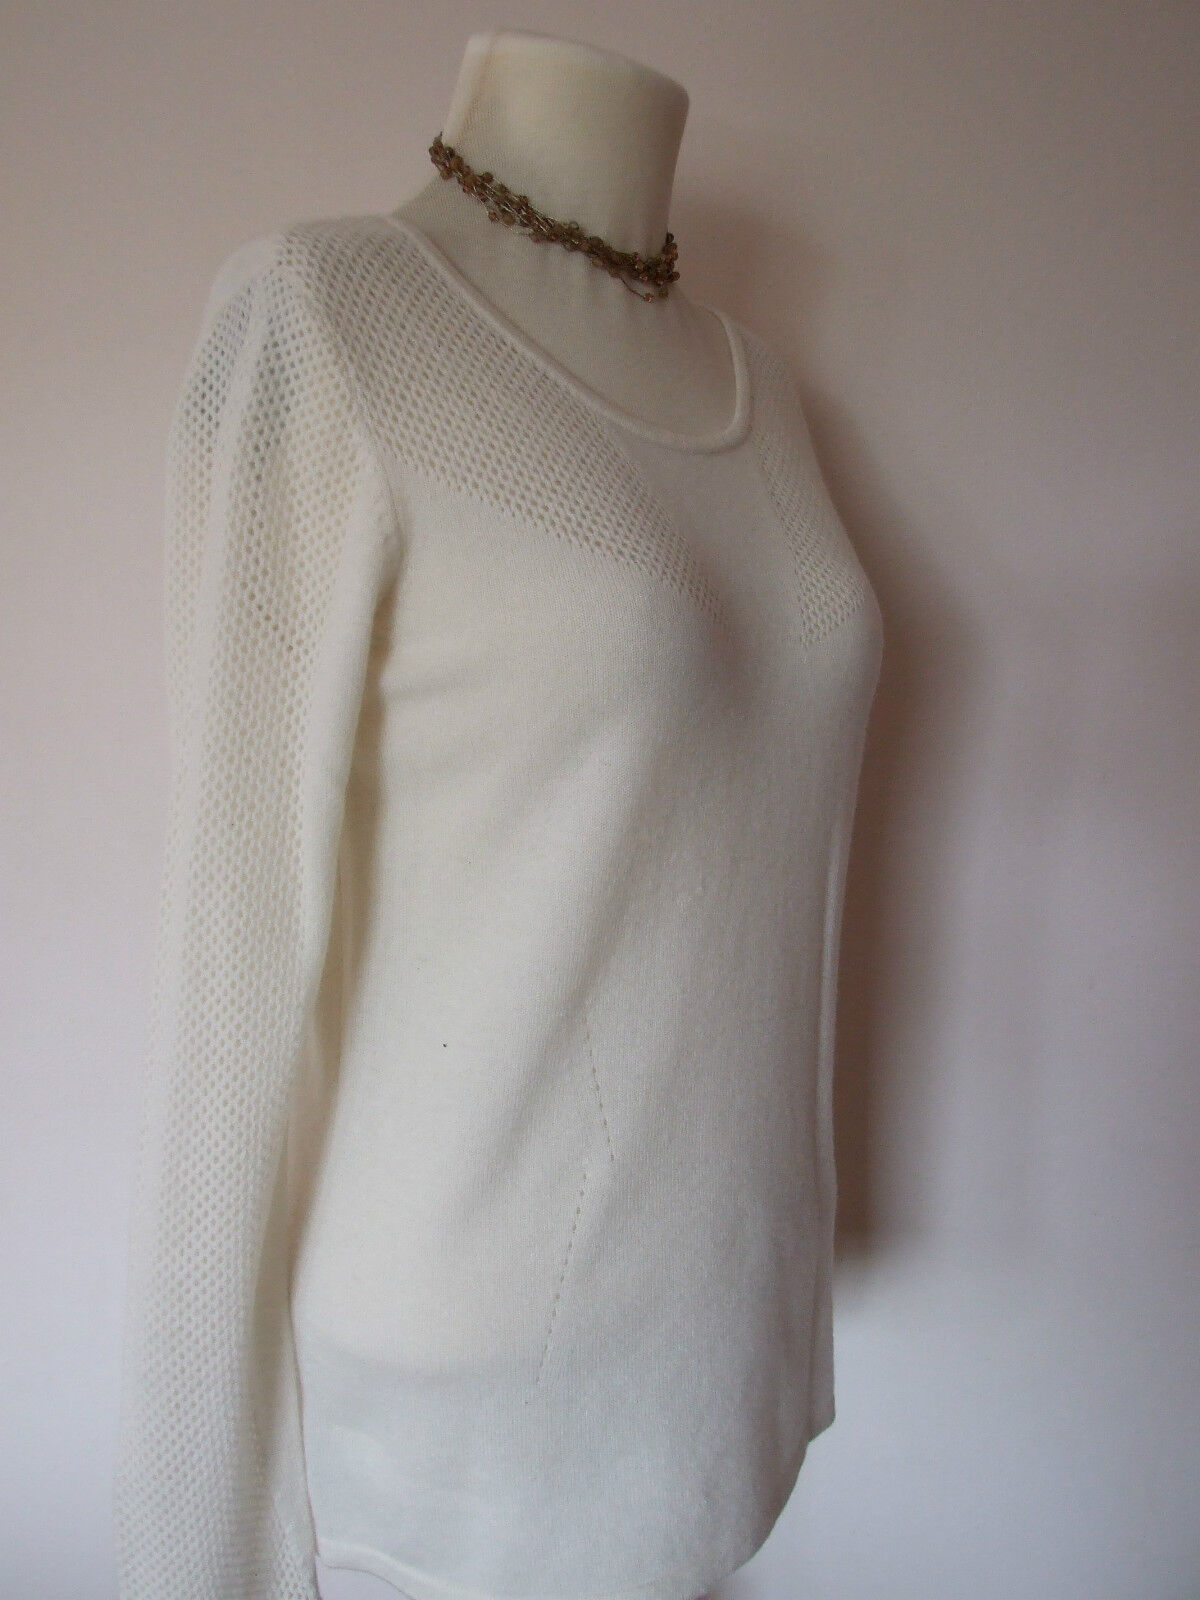 M&S Per Una Speziale Pure Cashmere Cream Pointelle Jumper sizes 8-22 bnwot RP